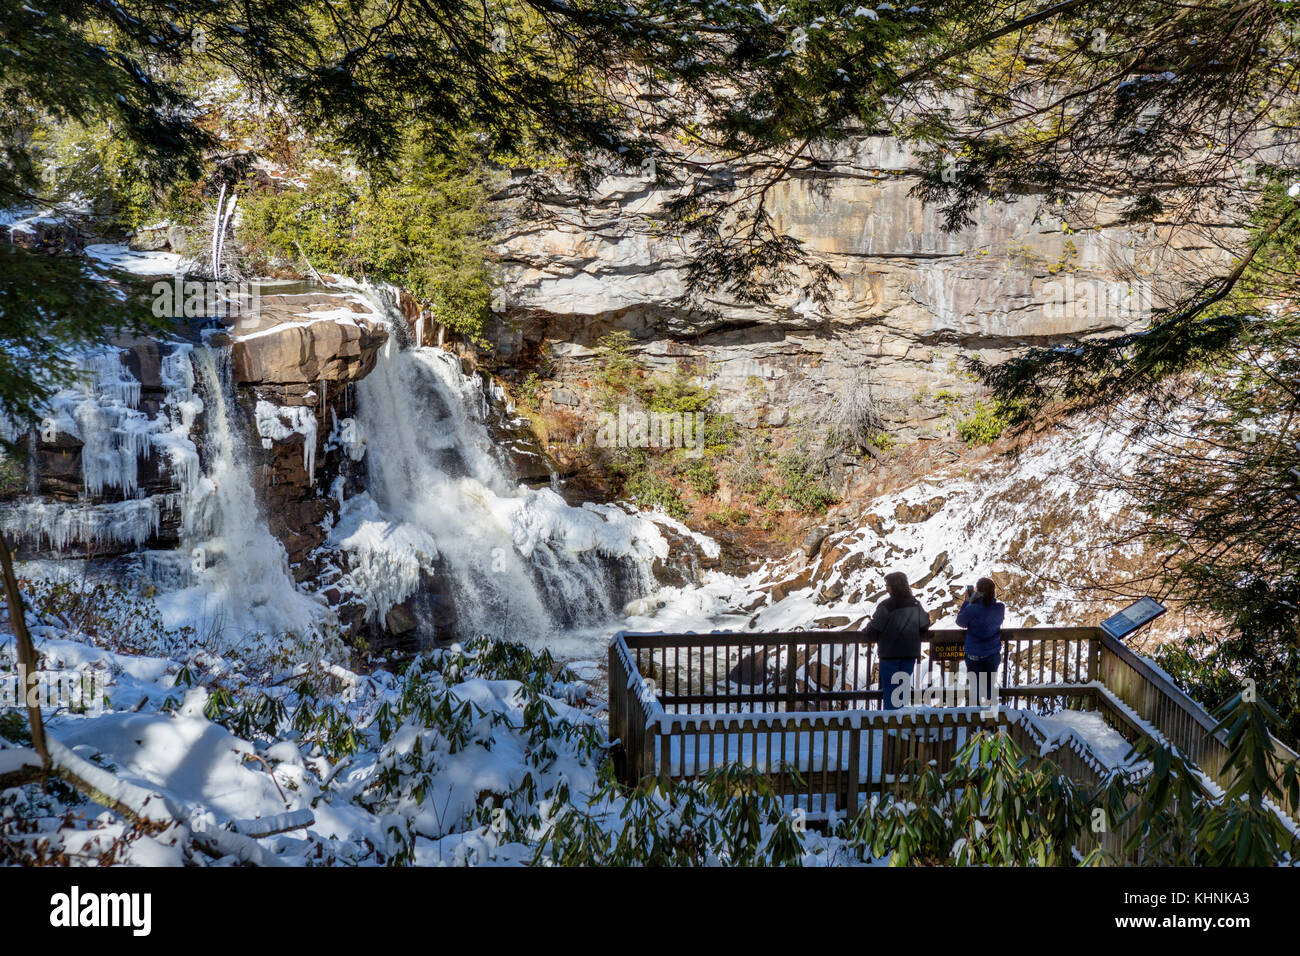 Blackwater Falls, Blackwater Falls State Park, Allegheny Mountains, West Virginia, USA - Stock Image